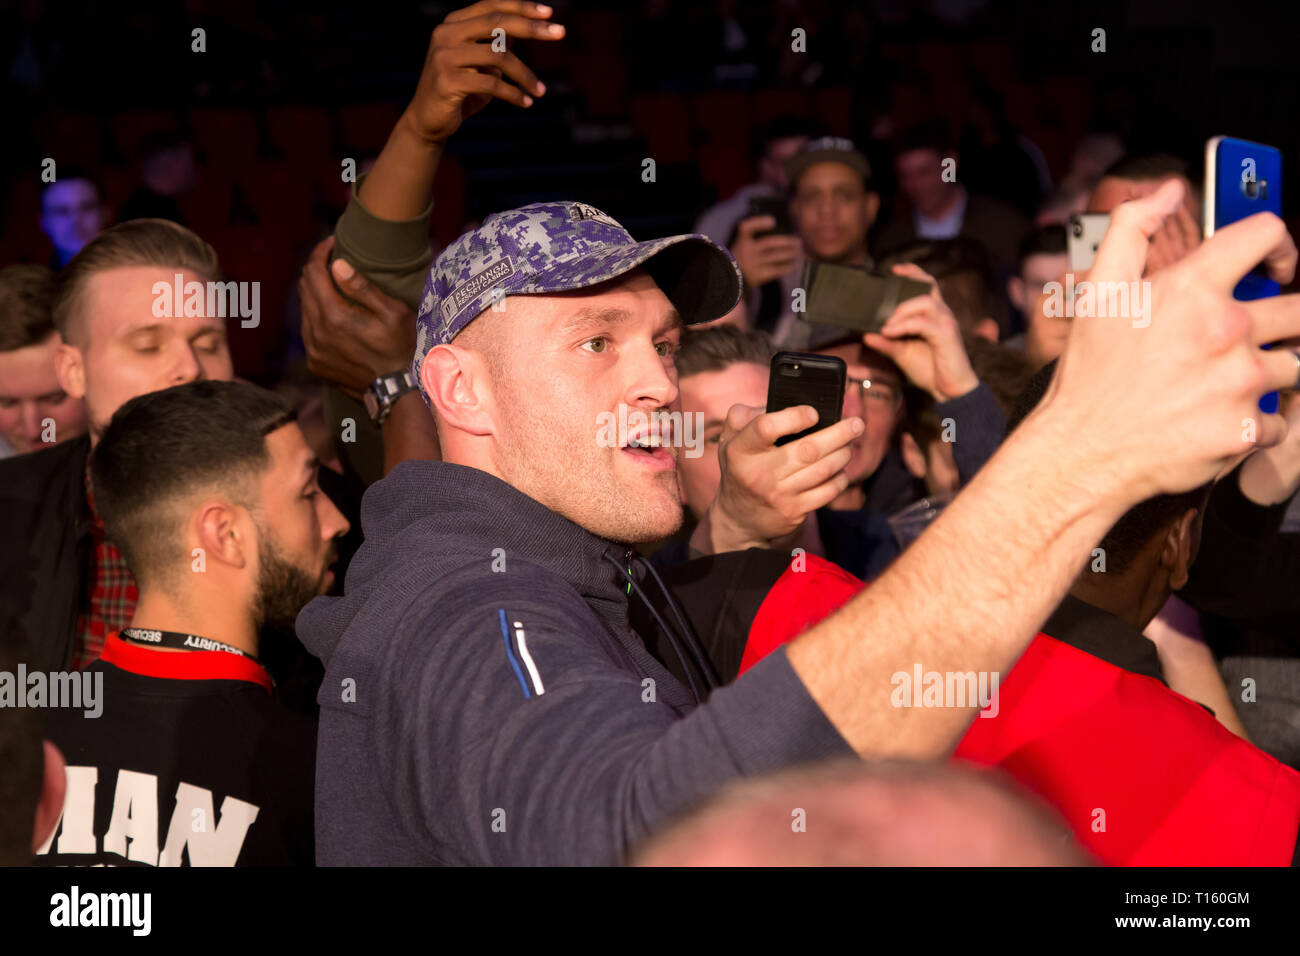 Leicester, UK. 23rd Mar, 2019.  The Morningside Arena Leicester Heavyweight Boxer Tyson Fury Takes Selfie photos with the crowd at the morningside arena  People in Picture Tyson Fury Credit: Dean Fardell/Alamy Live News - Stock Image